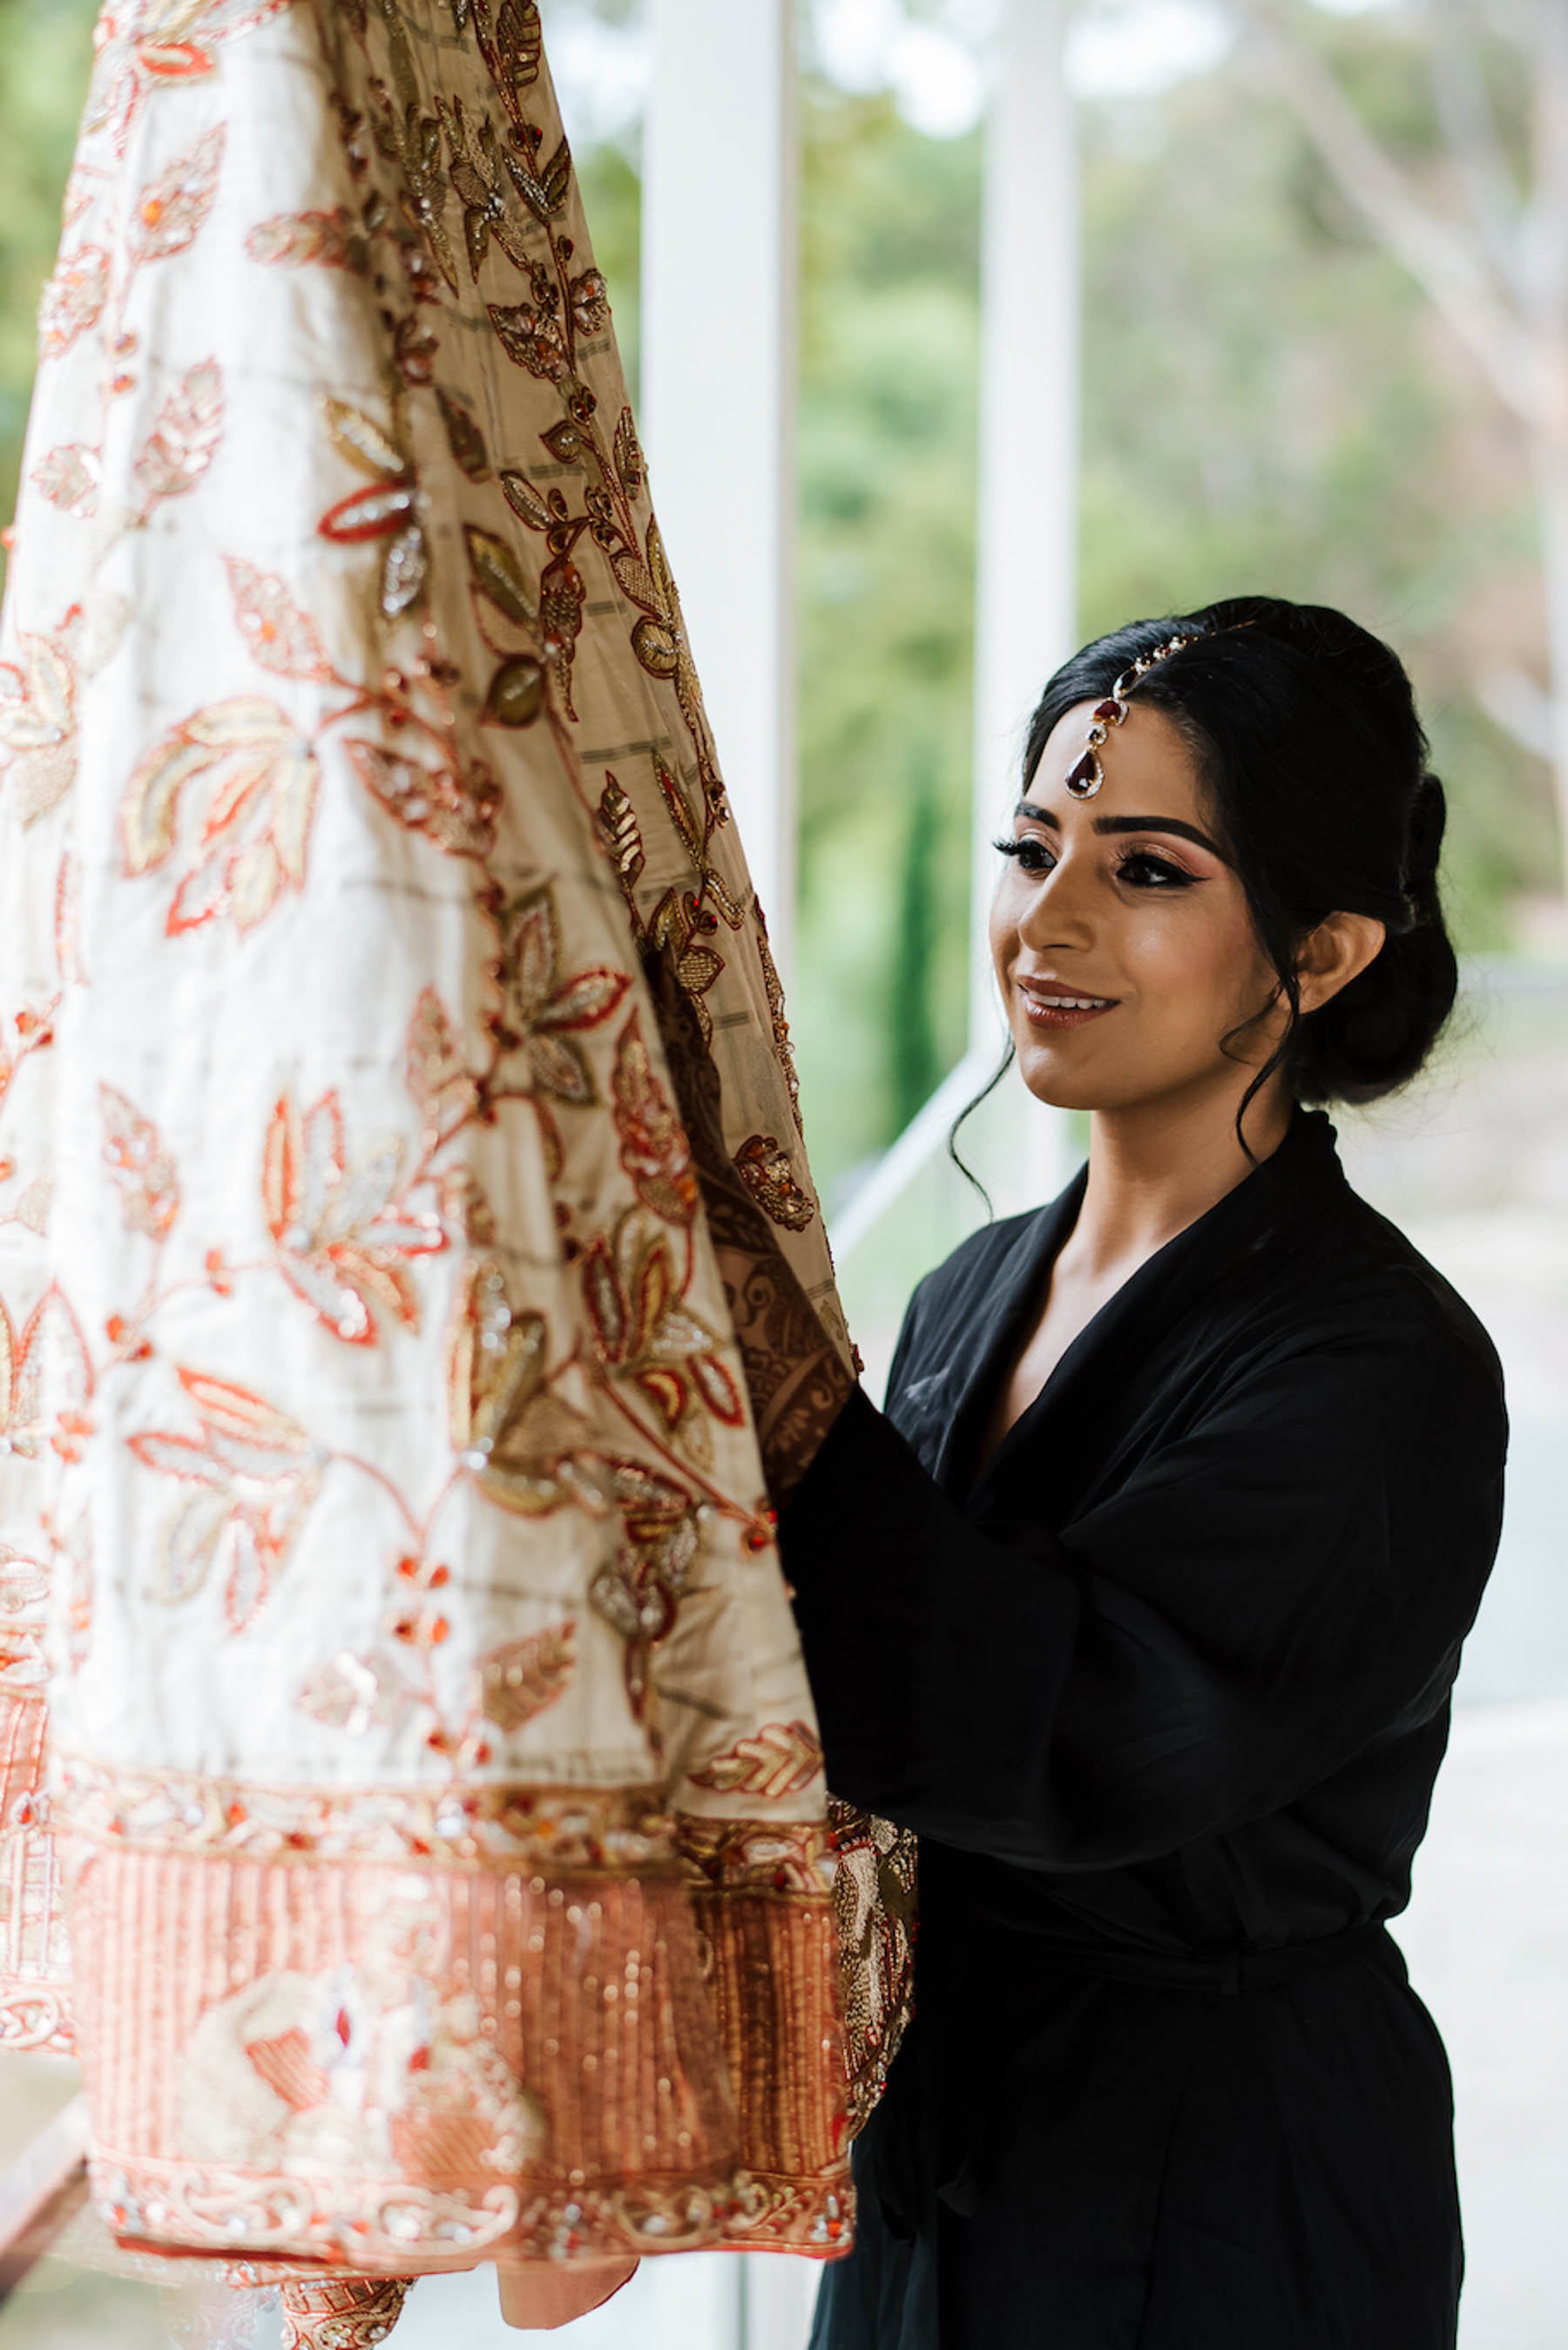 Indian bride, Nomeeta had her mother design her bridal lehenga for her big day.